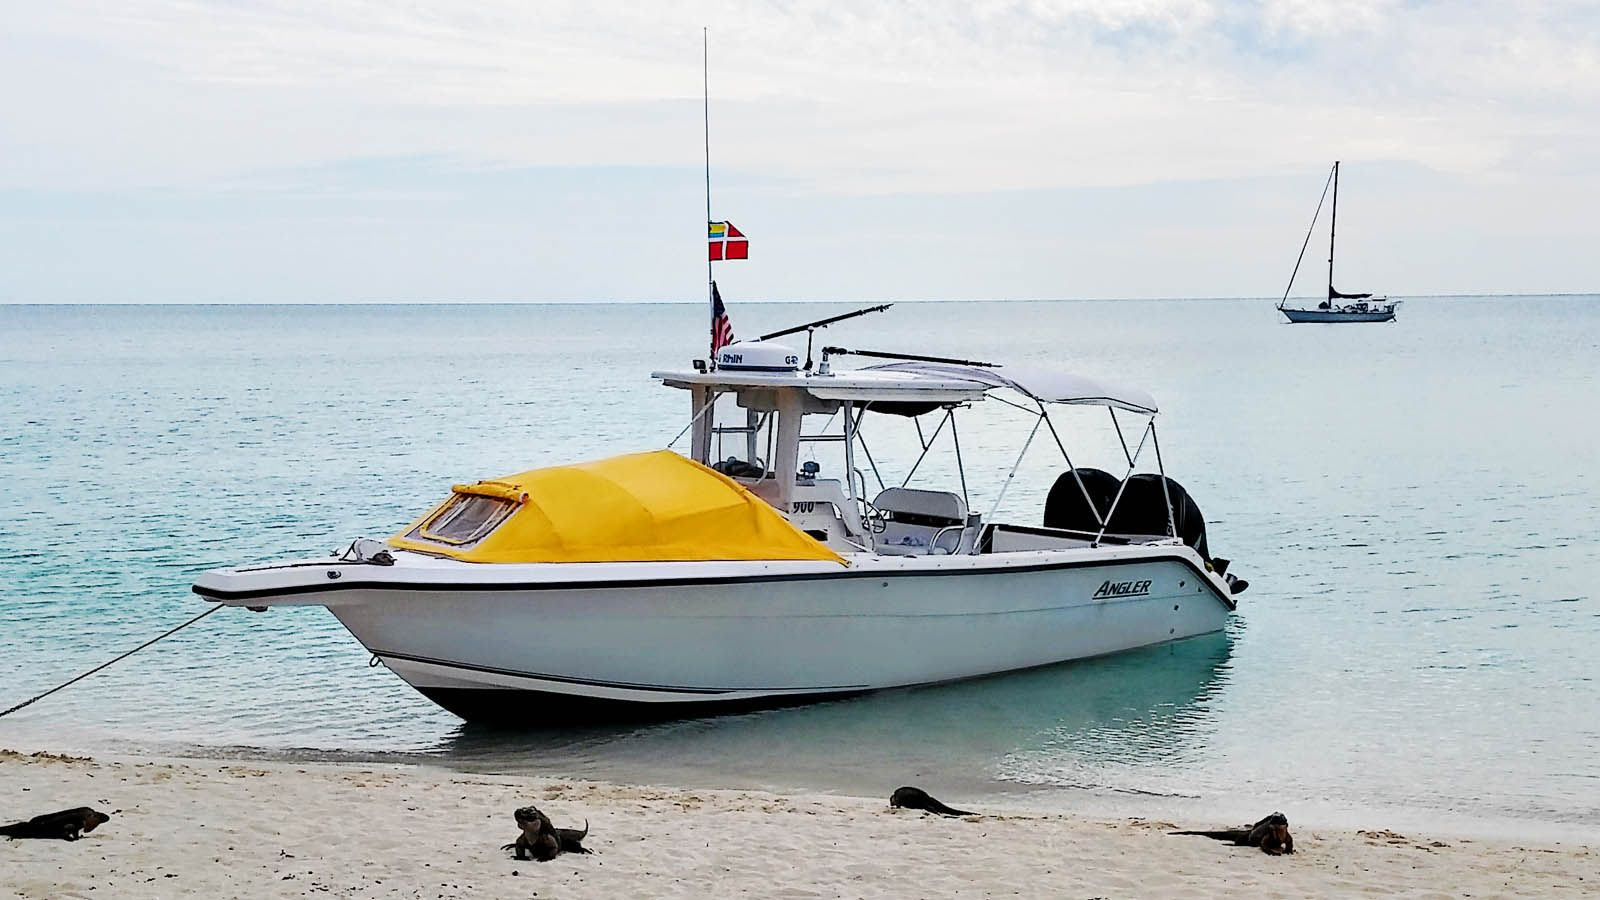 Welcome to Marine Canopy photo gallery. The gallery is a collection of detailed images of the product itself and the product manufacturing. & THE ELEMENT® PRODUCTION | The Element® Marine Canopy | Pinterest ...